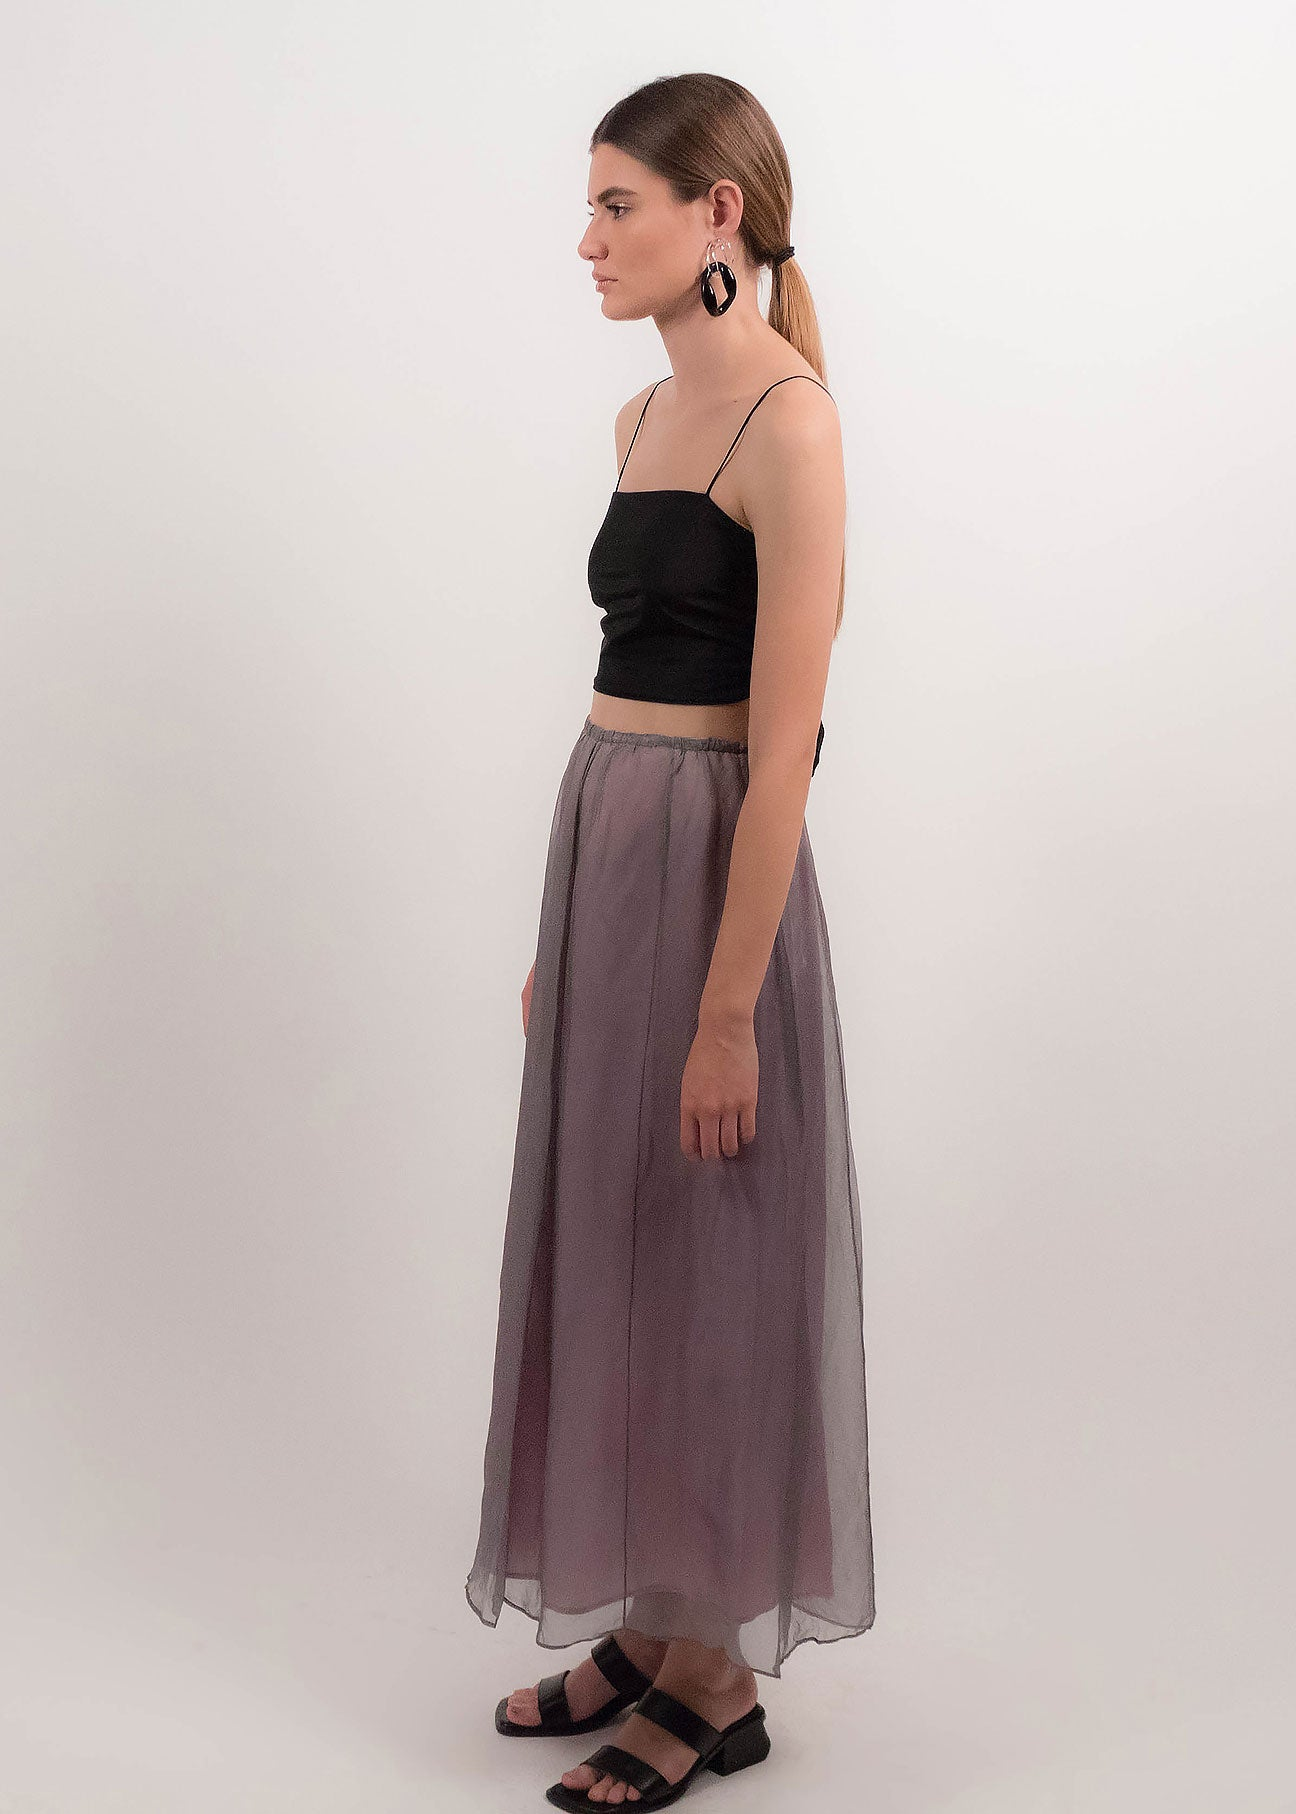 90s Silk Tulle Skirt